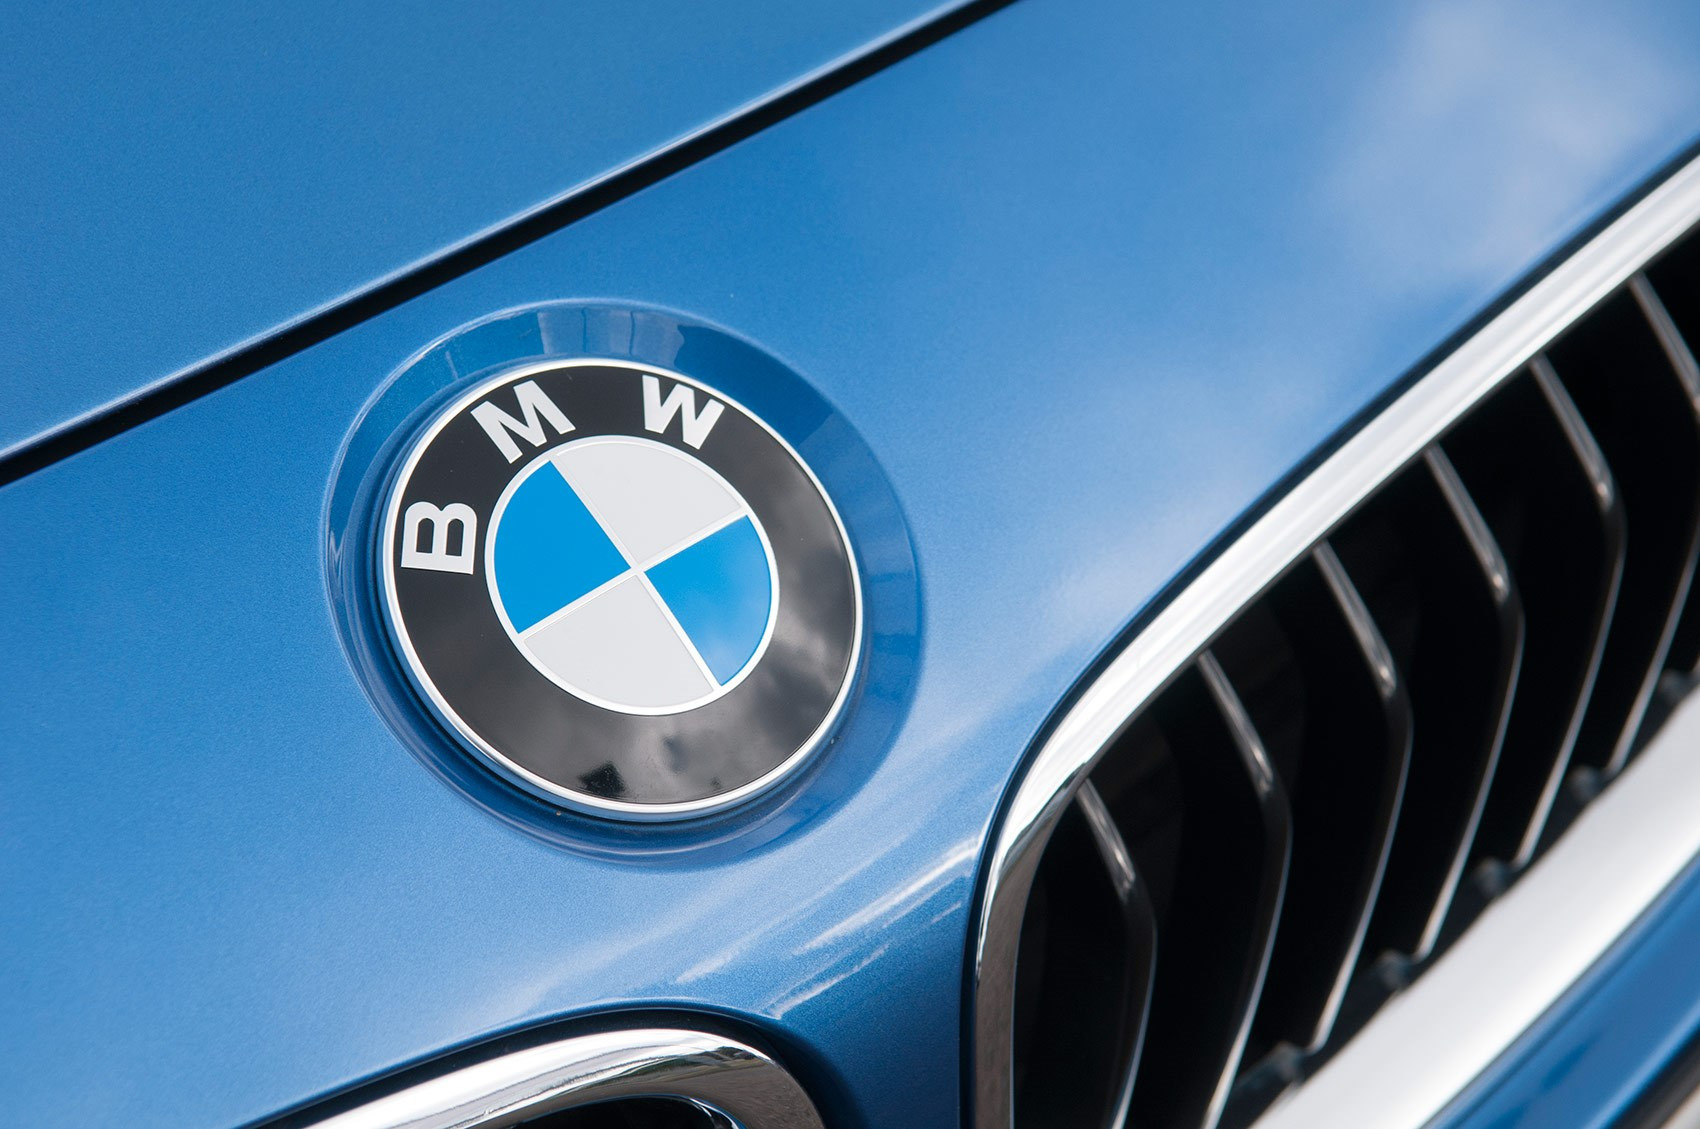 Cars sold in Ireland included in recall of 312000 BMW vehicles